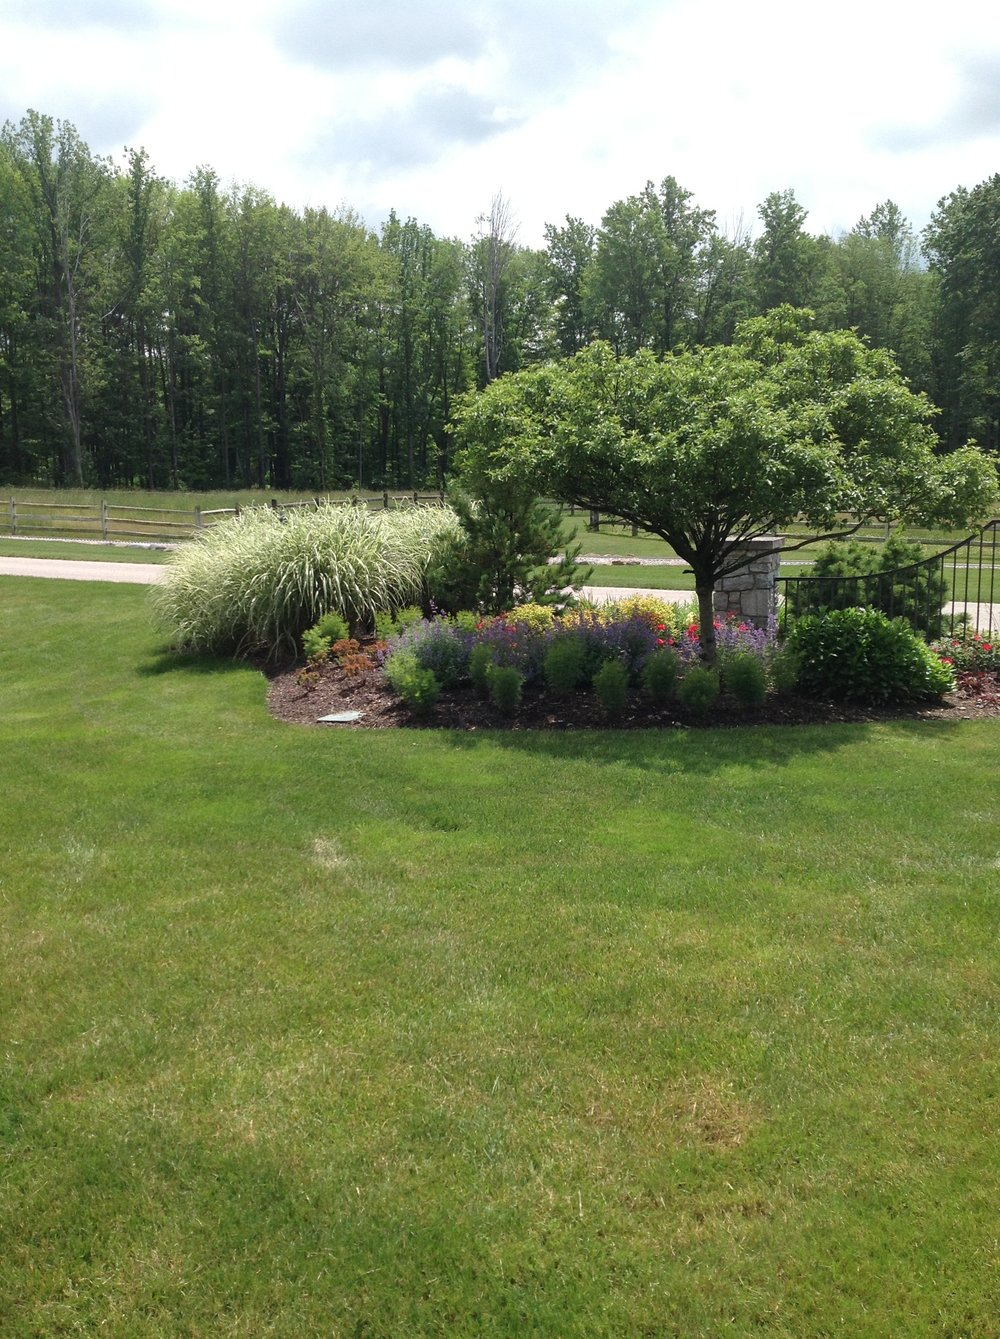 Unilock landscaping companies with top lawn fertilzer in Chagrin Falls, OH